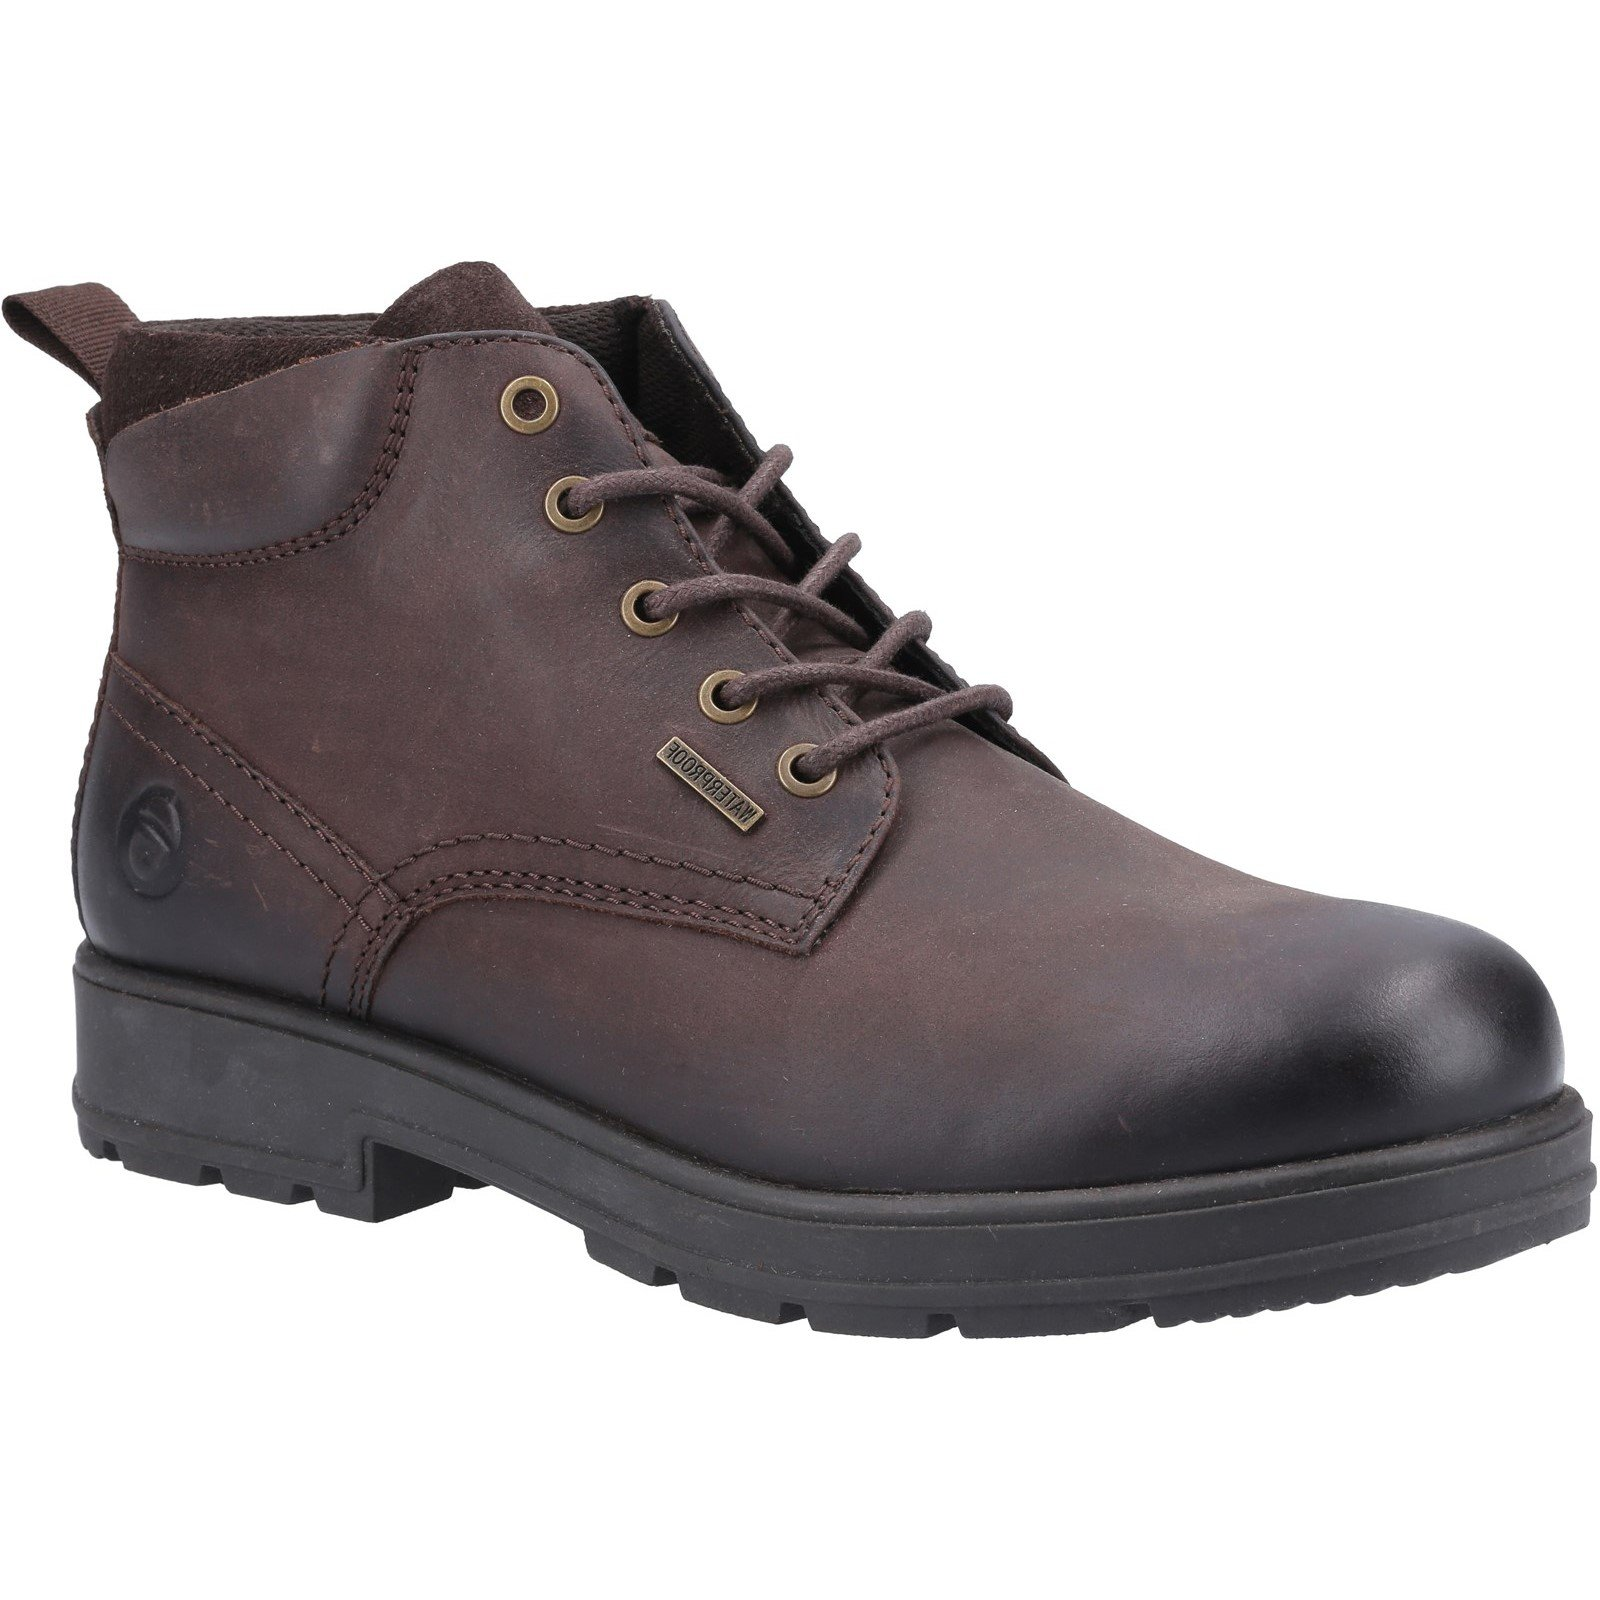 Cotswold Men's Winson Lace Up Boots Brown 32966 - Brown 8